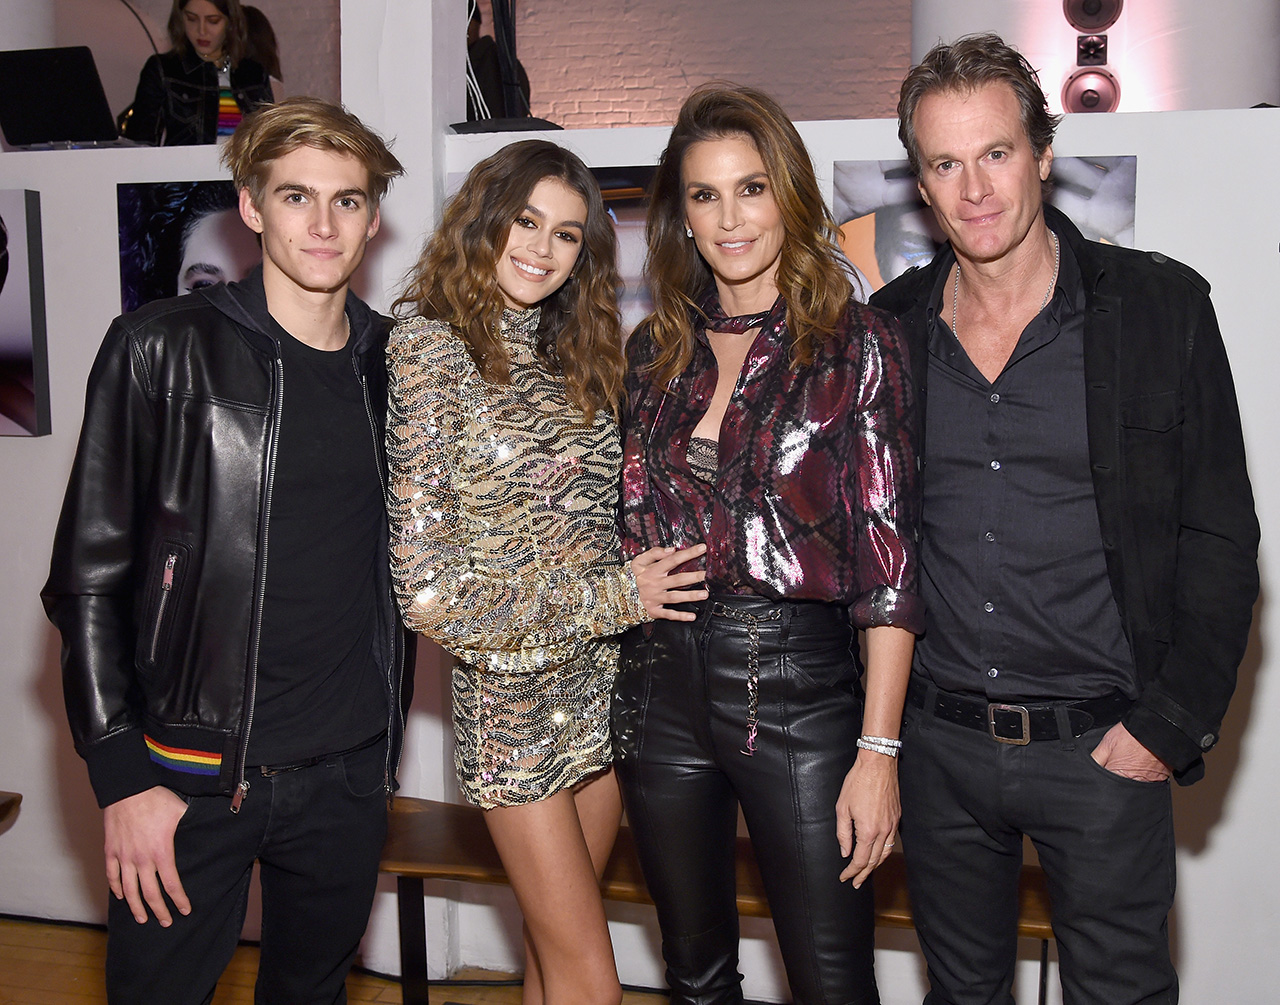 NEW YORK, NY - FEBRUARY 15: (L-R) Presley Gerber, Kaia Gerber, Cindy Crawford and Rande Gerber attend Marc Jacobs Beauty Celebrates Kaia Gerber on February 15, 2017 in New York City. (Photo by Jamie McCarthy/Getty Images for Marc Jacobs)